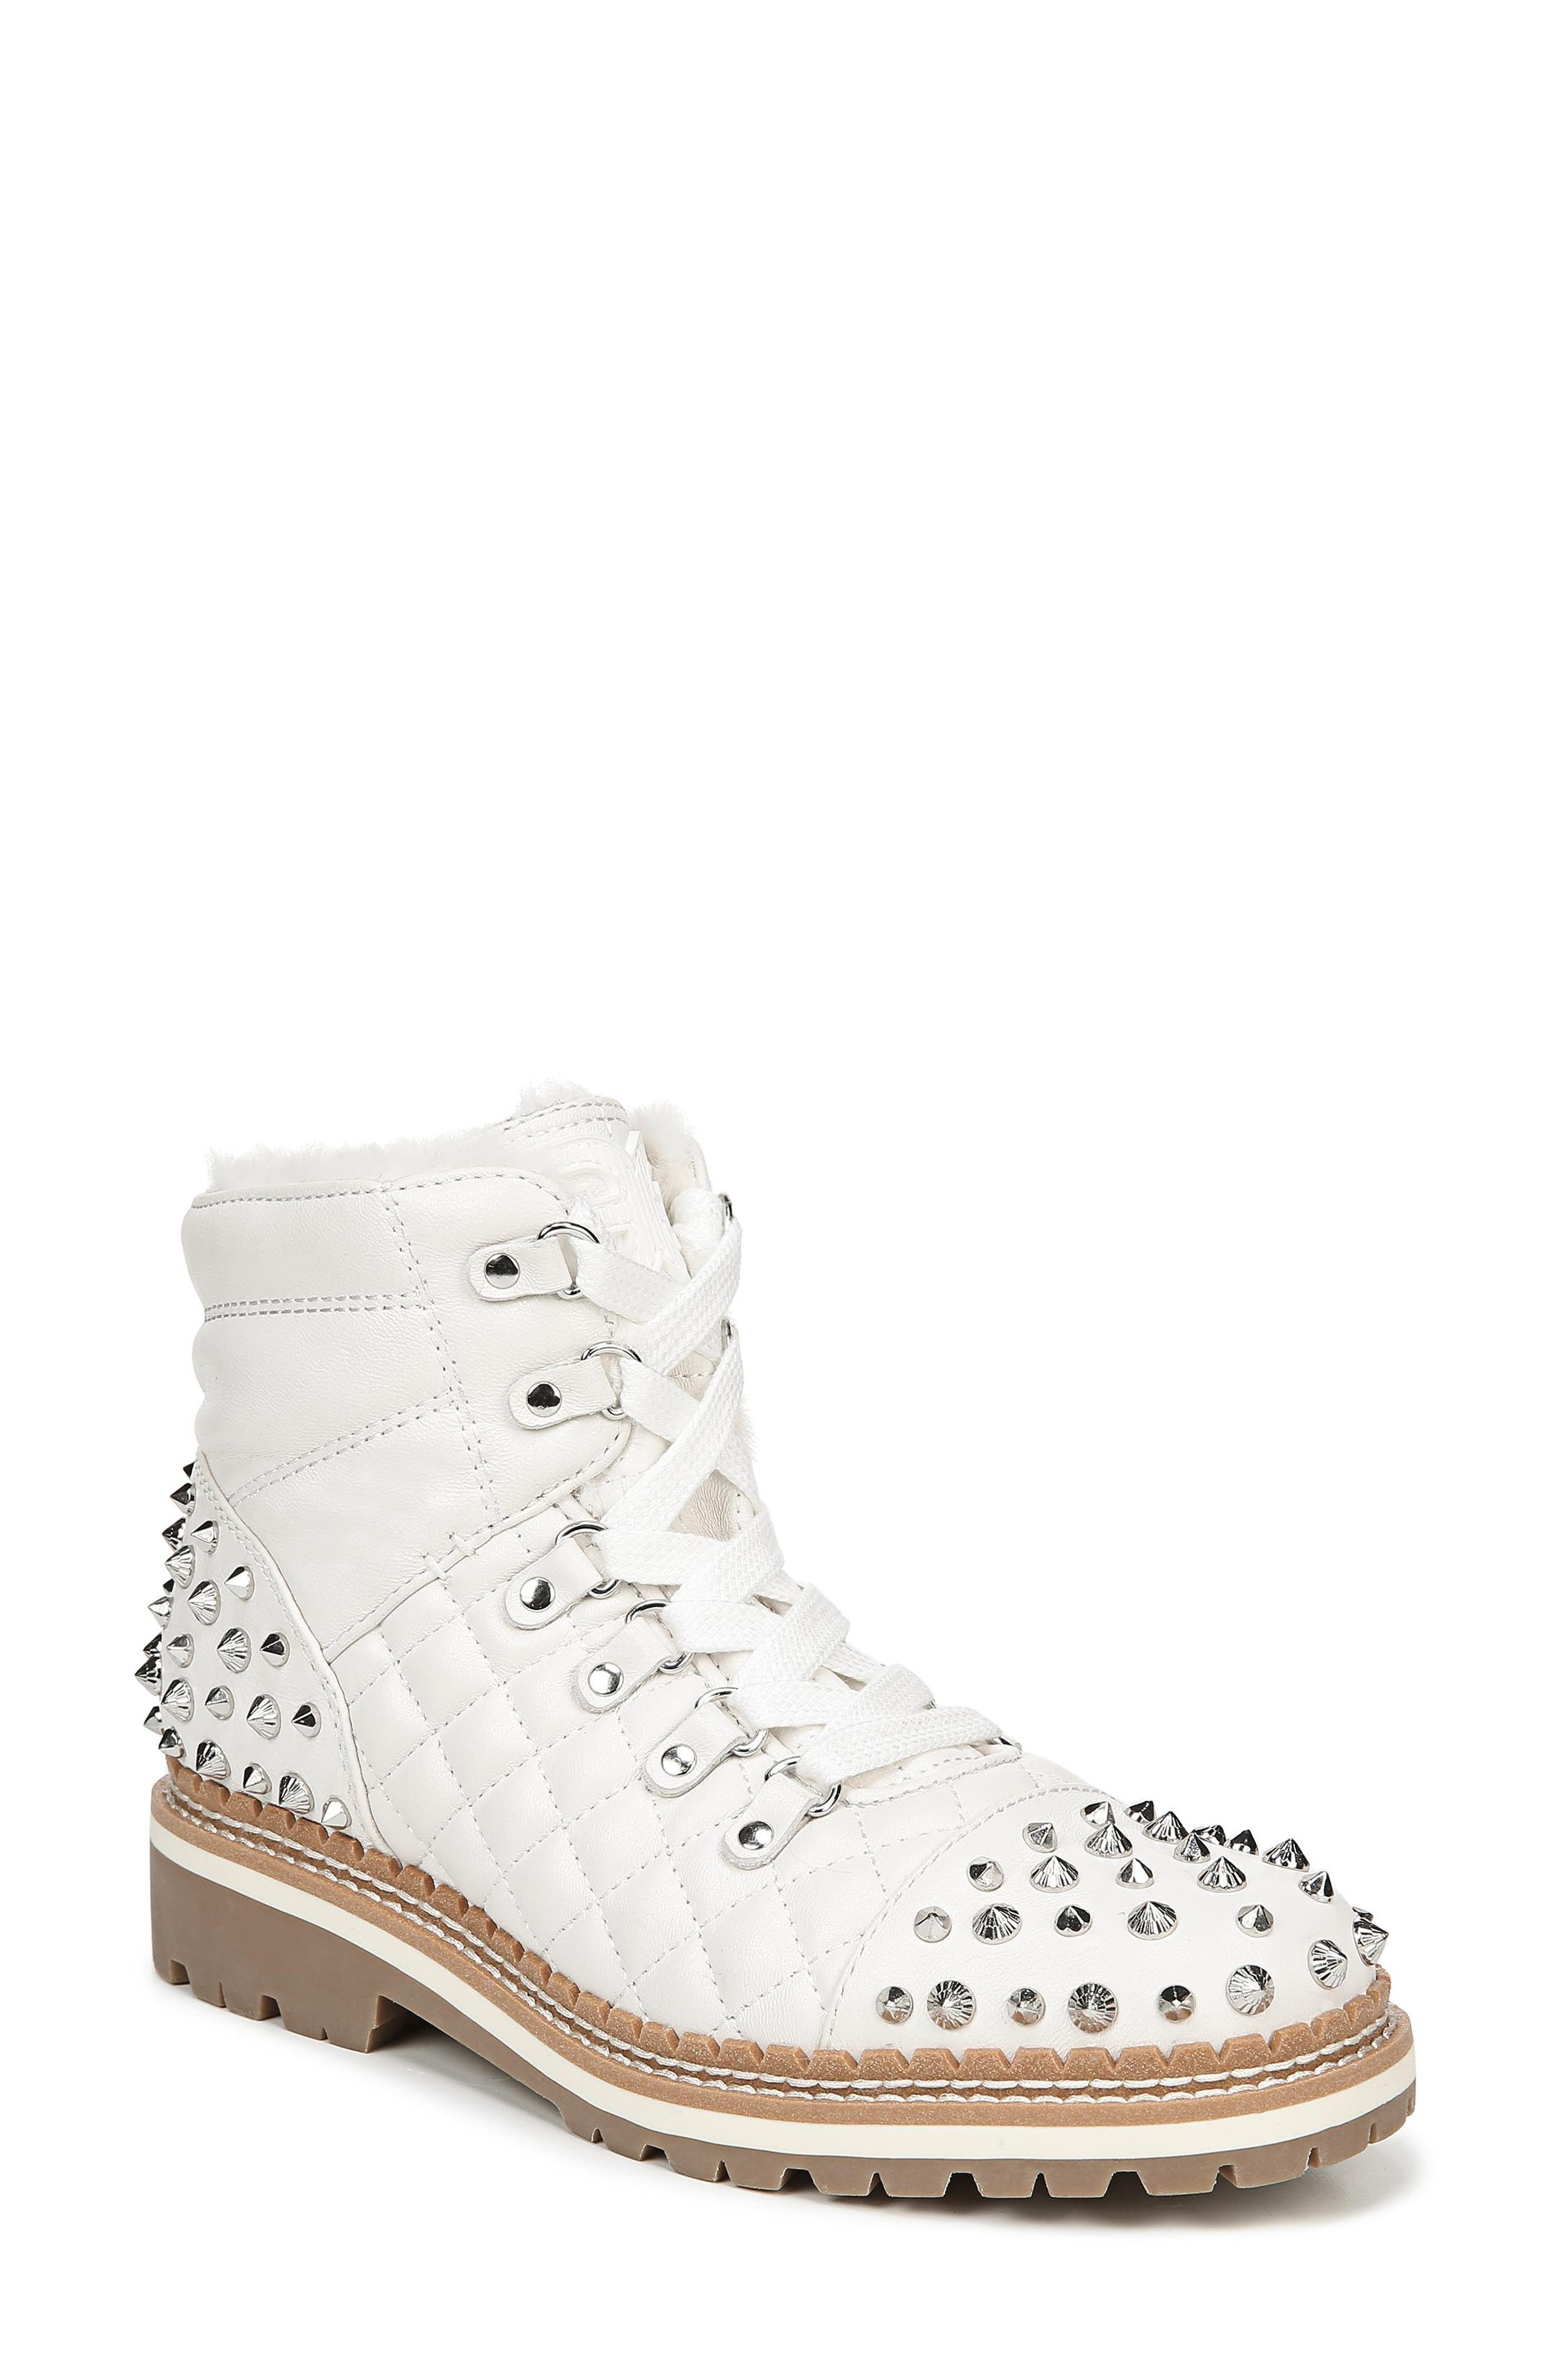 Sam Edelman Bren Boot, White